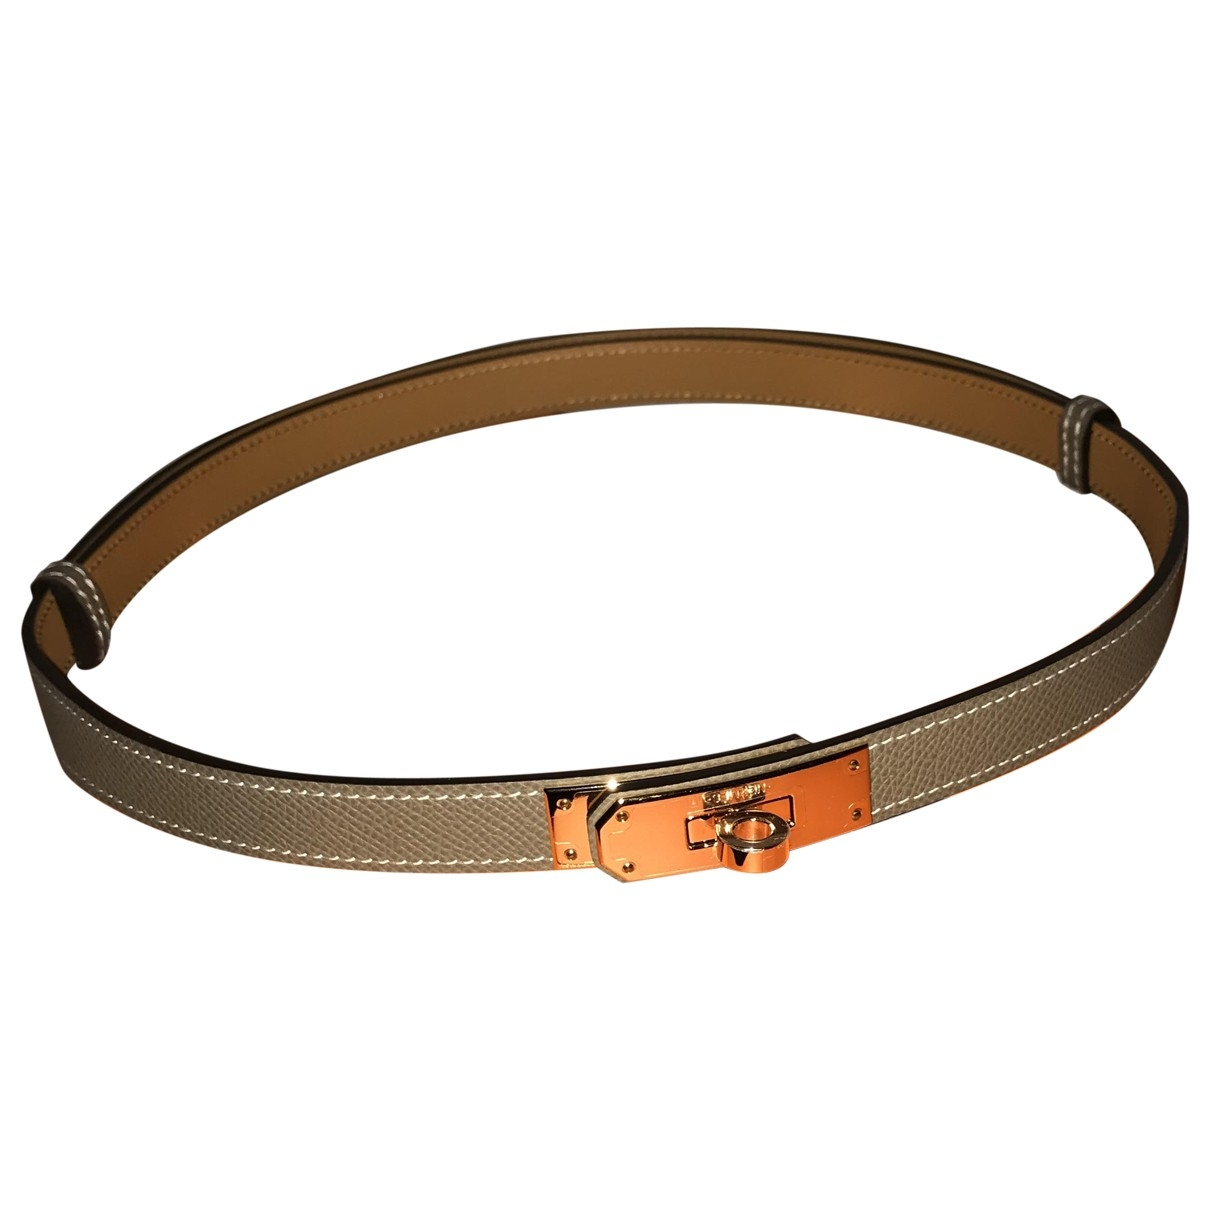 Hermès Kelly Multicolour Leather belt for Women 70 cm